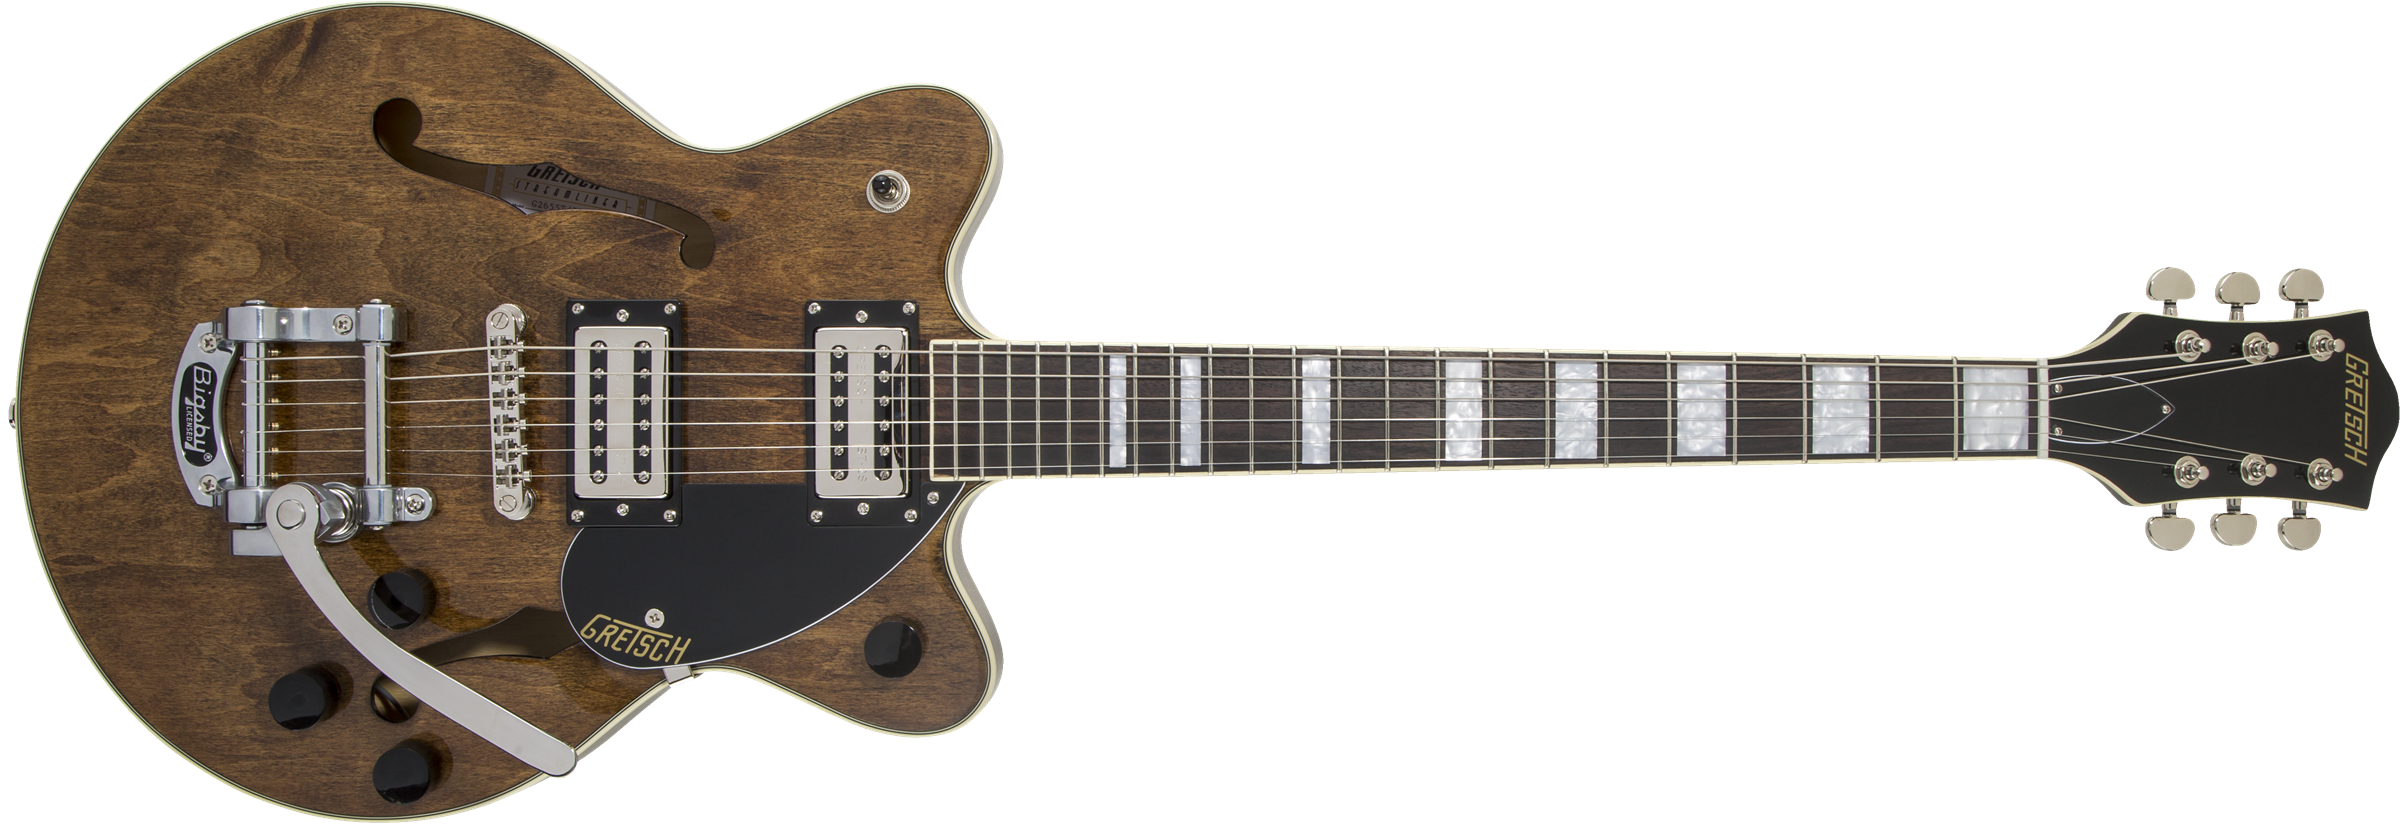 GRETSCH G2655T Streamliner Center Block Jr. with Bigsby, Laurel Fingerboard, BroadTron BT-2S Pickups, Imperial Stain